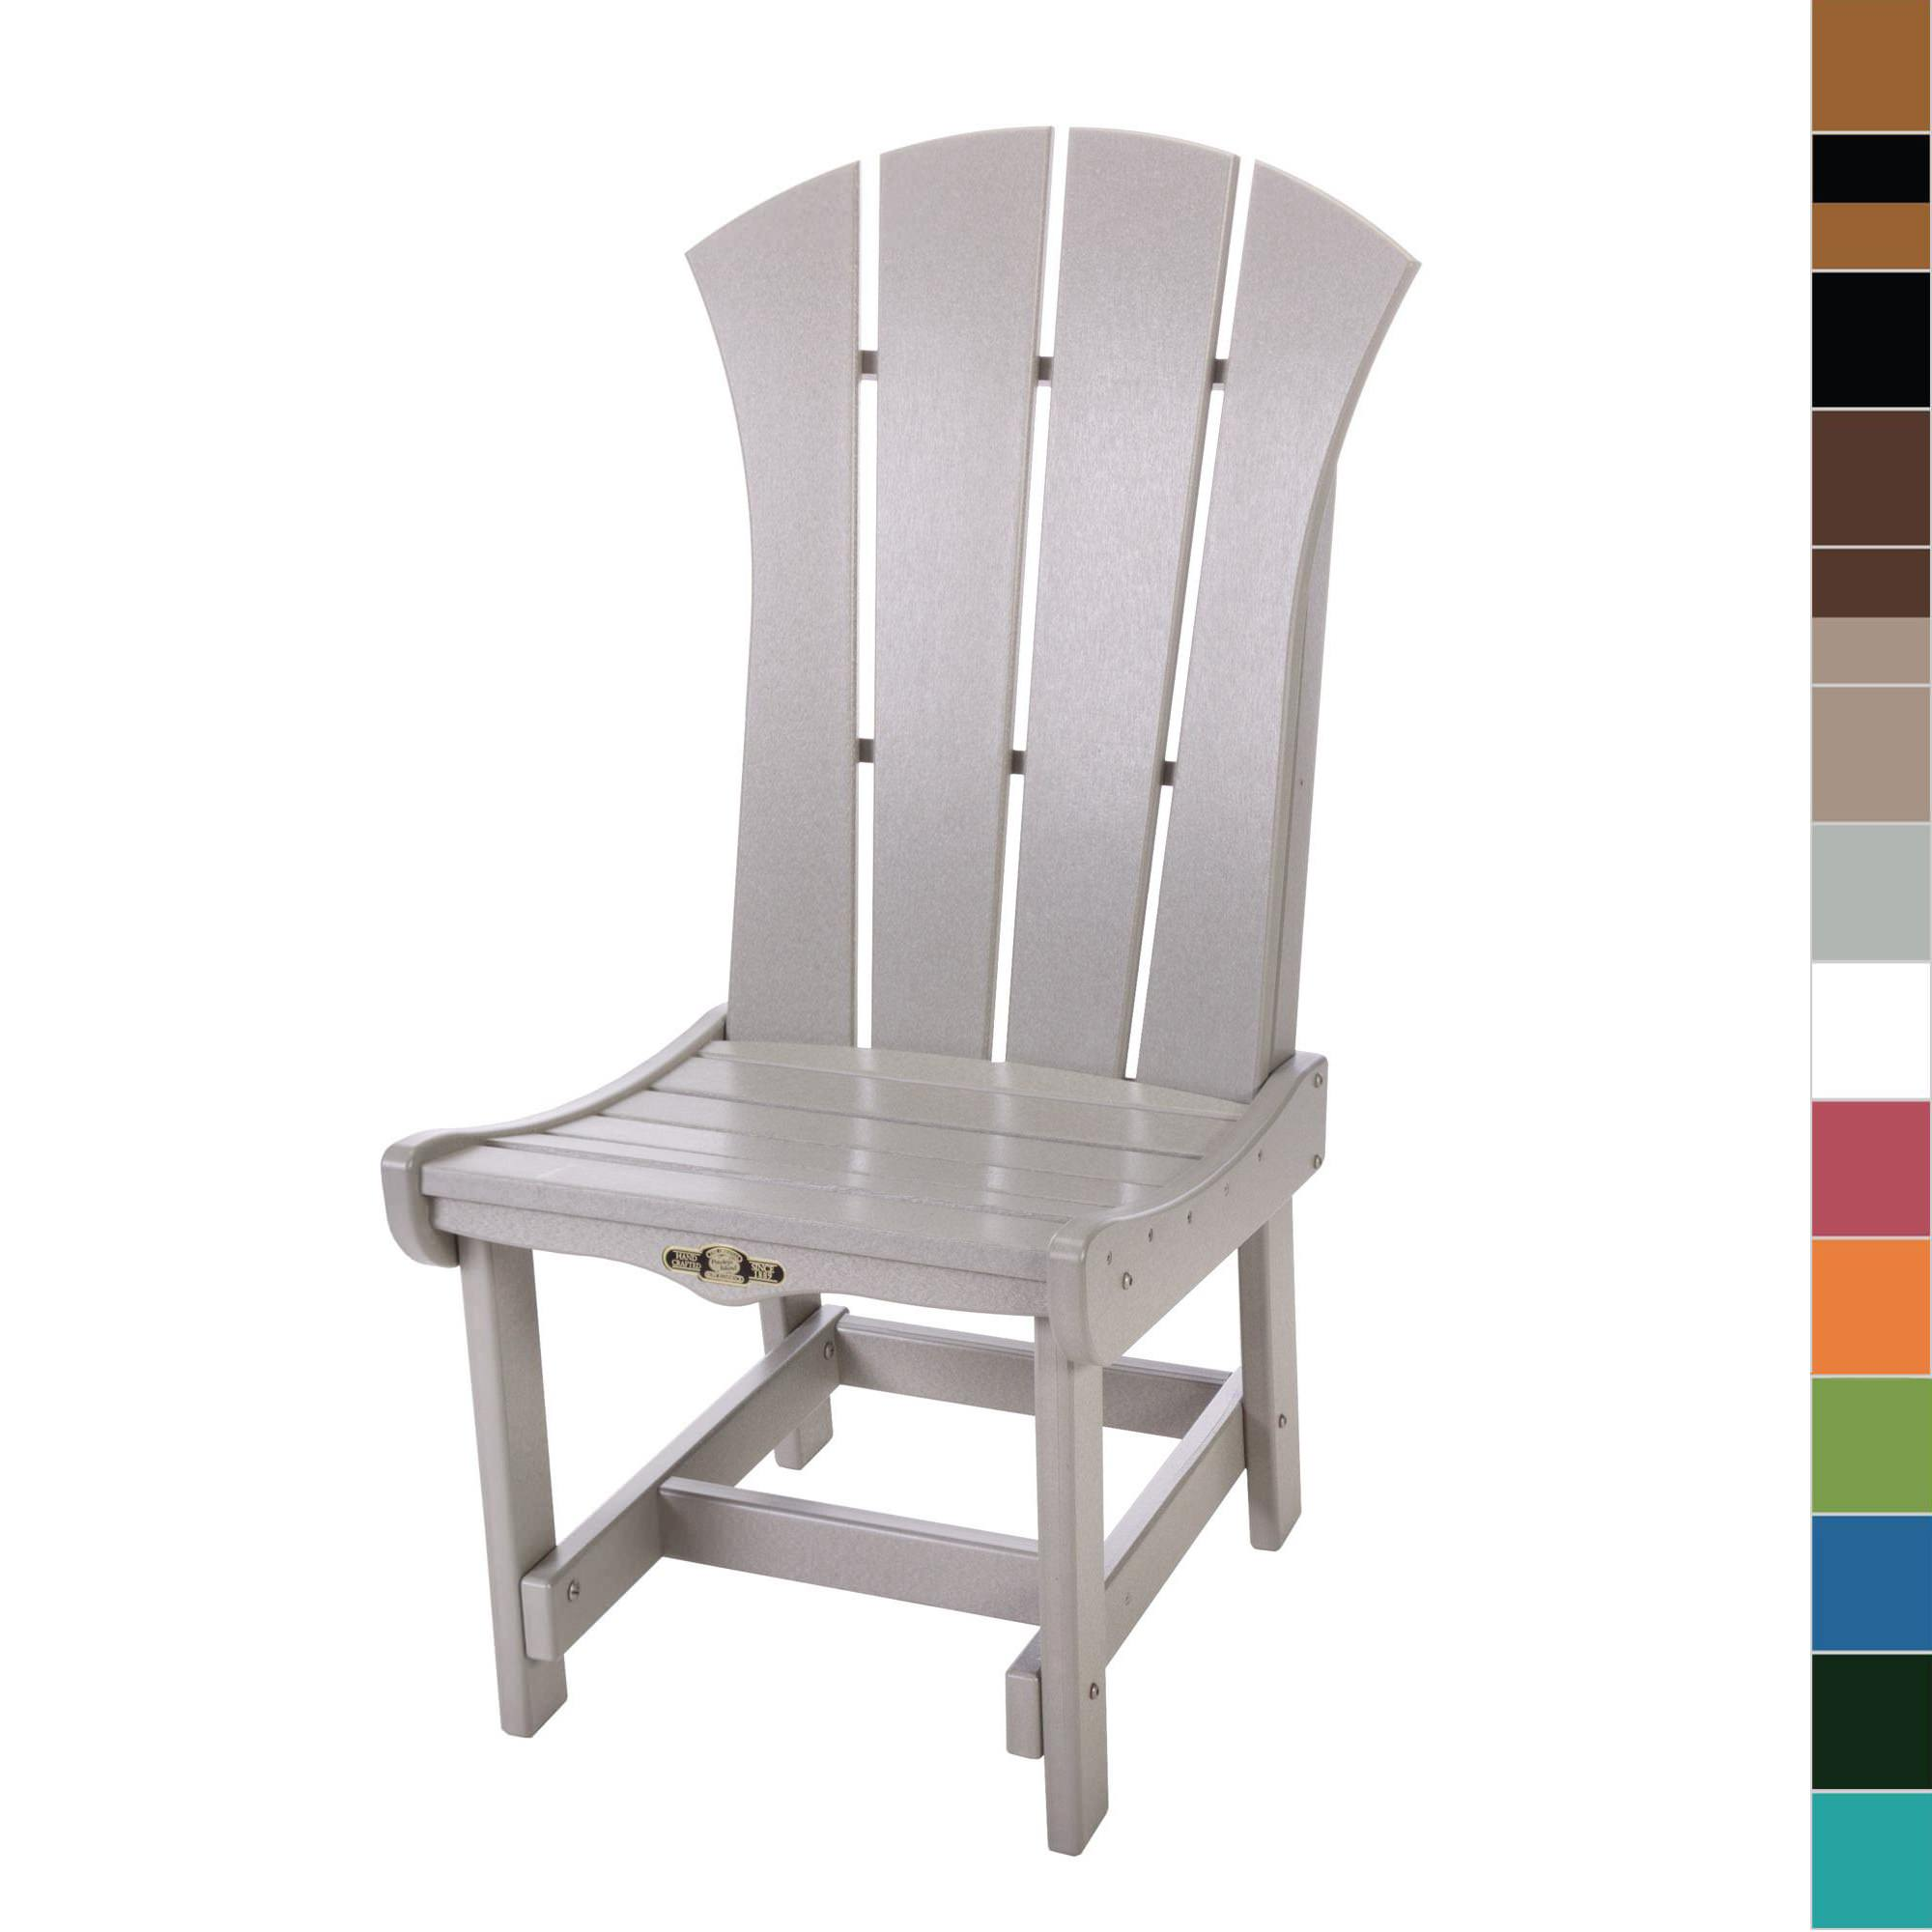 chairs attachment furniture inspirational stacking of patio loveseat outdoor df